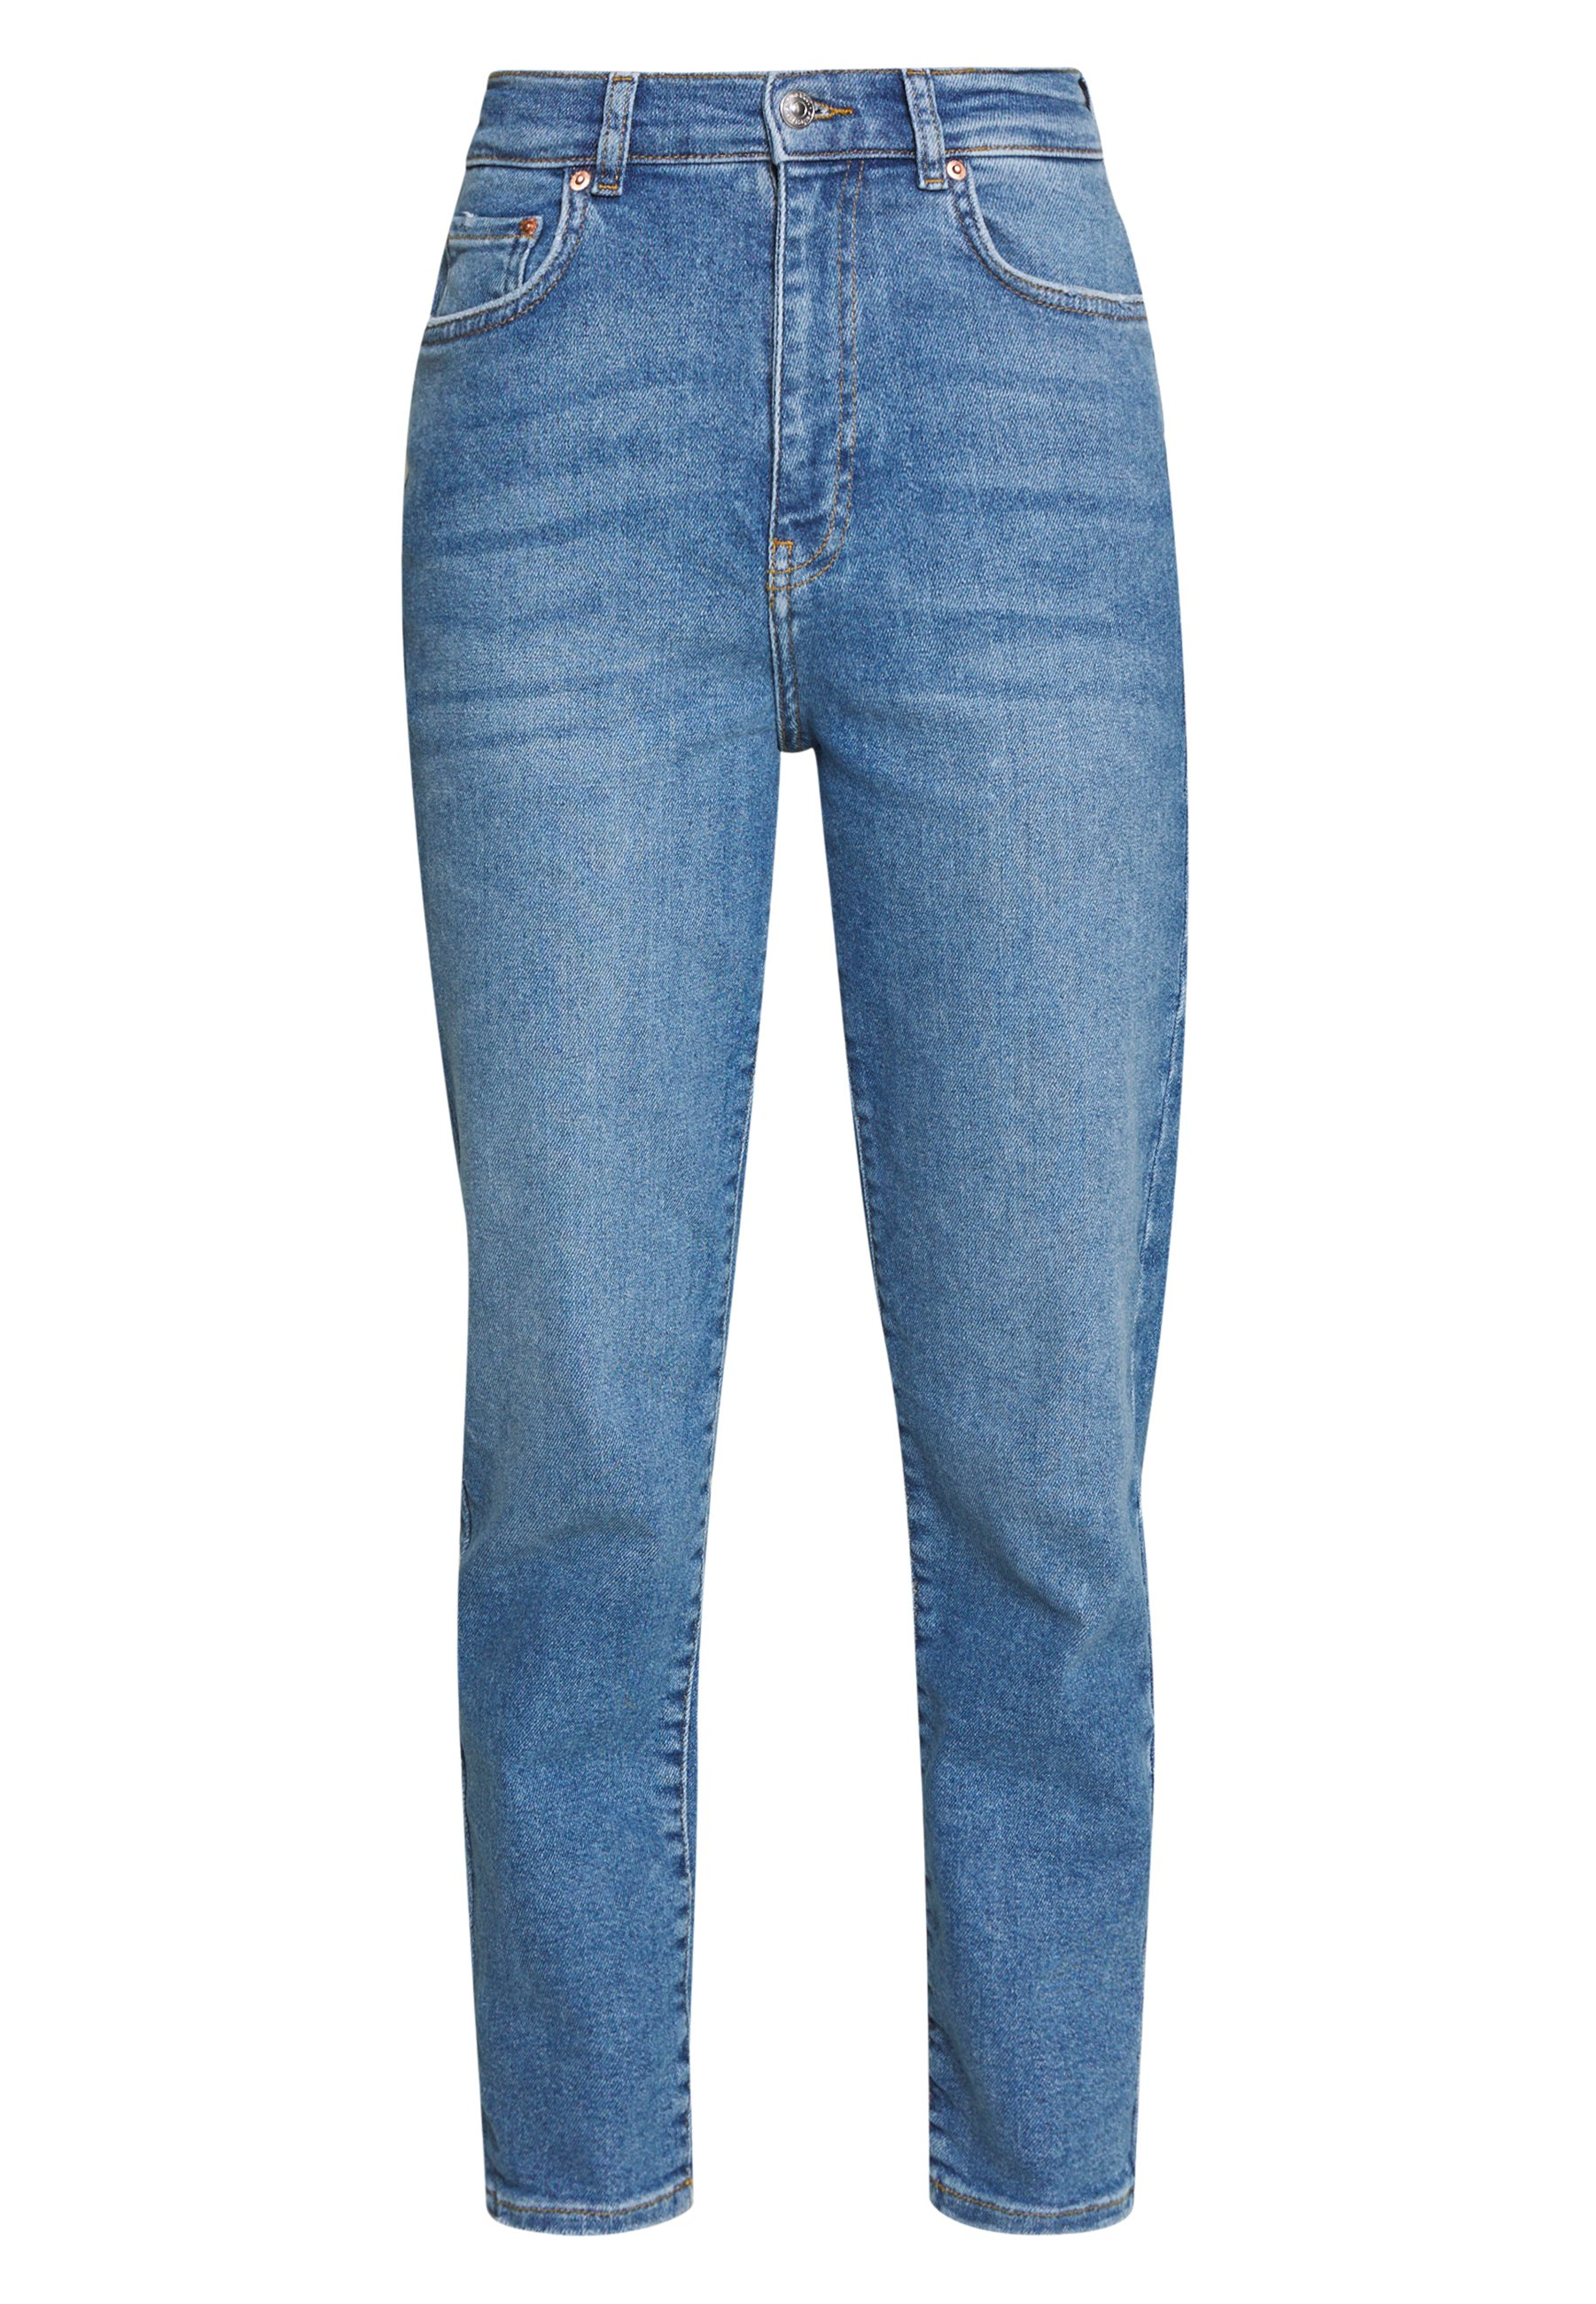 Gina Tricot Comfy Mom - Jeans Baggy Blue R4wDj